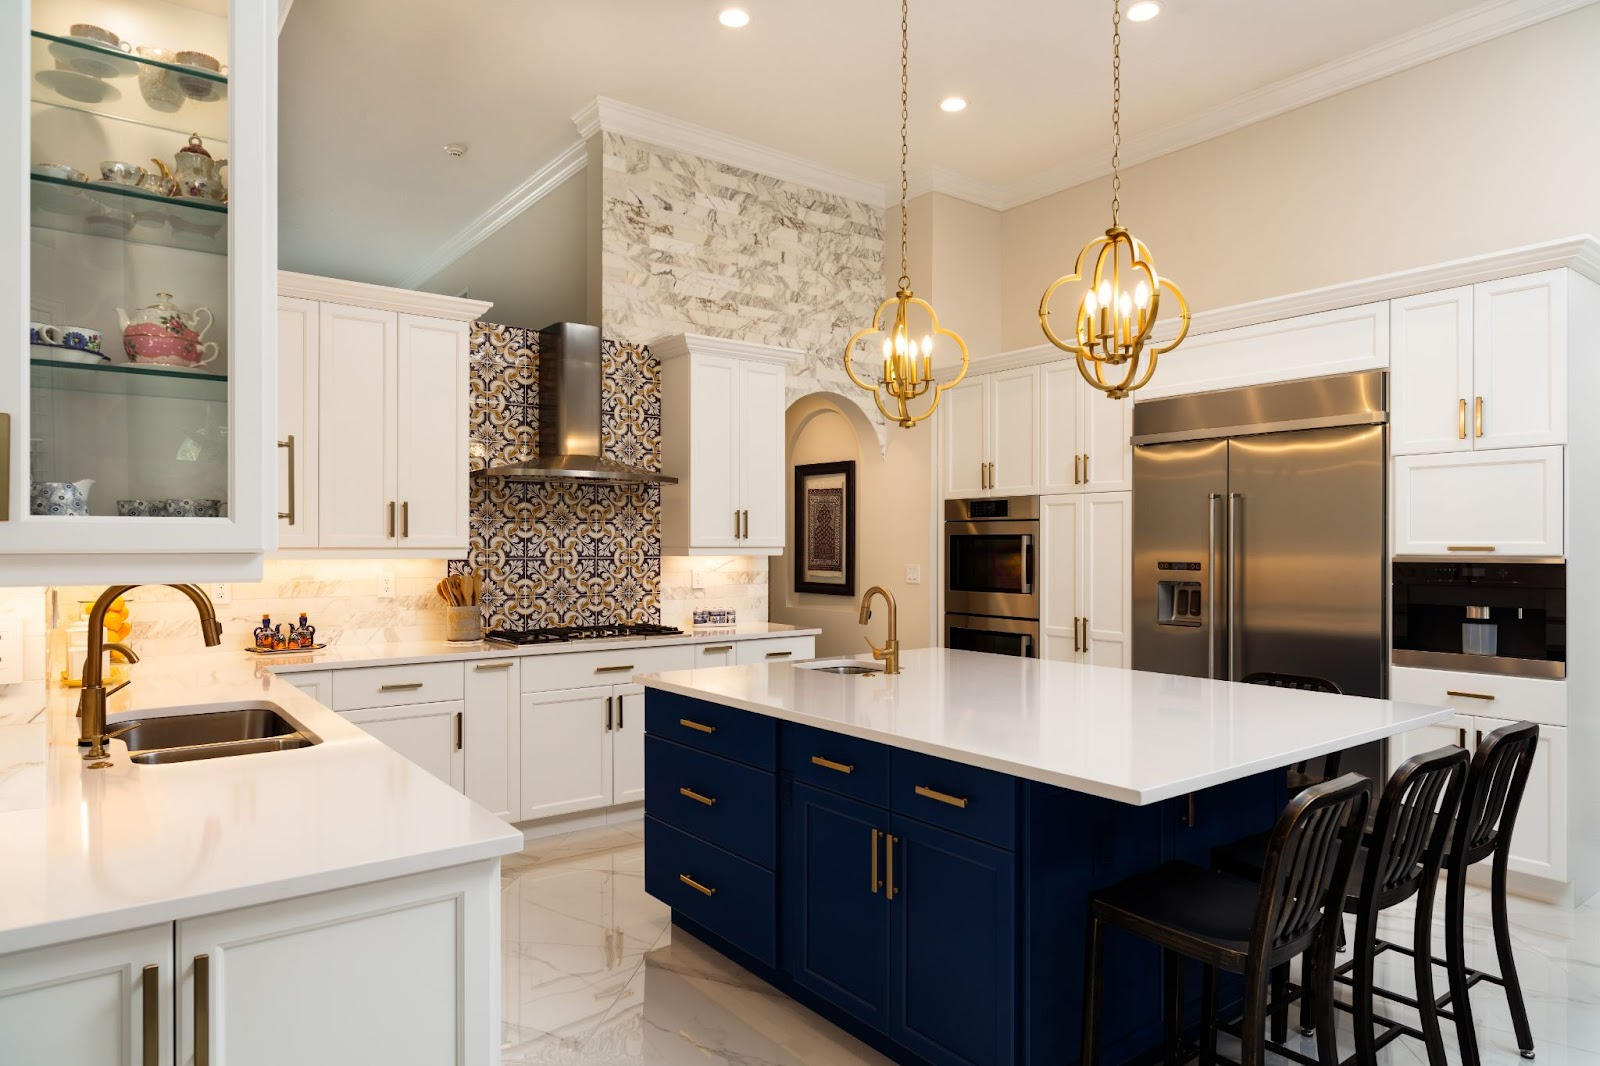 a luxurious kitchen with white and black cabinets, an island, and a beautiful backsplash